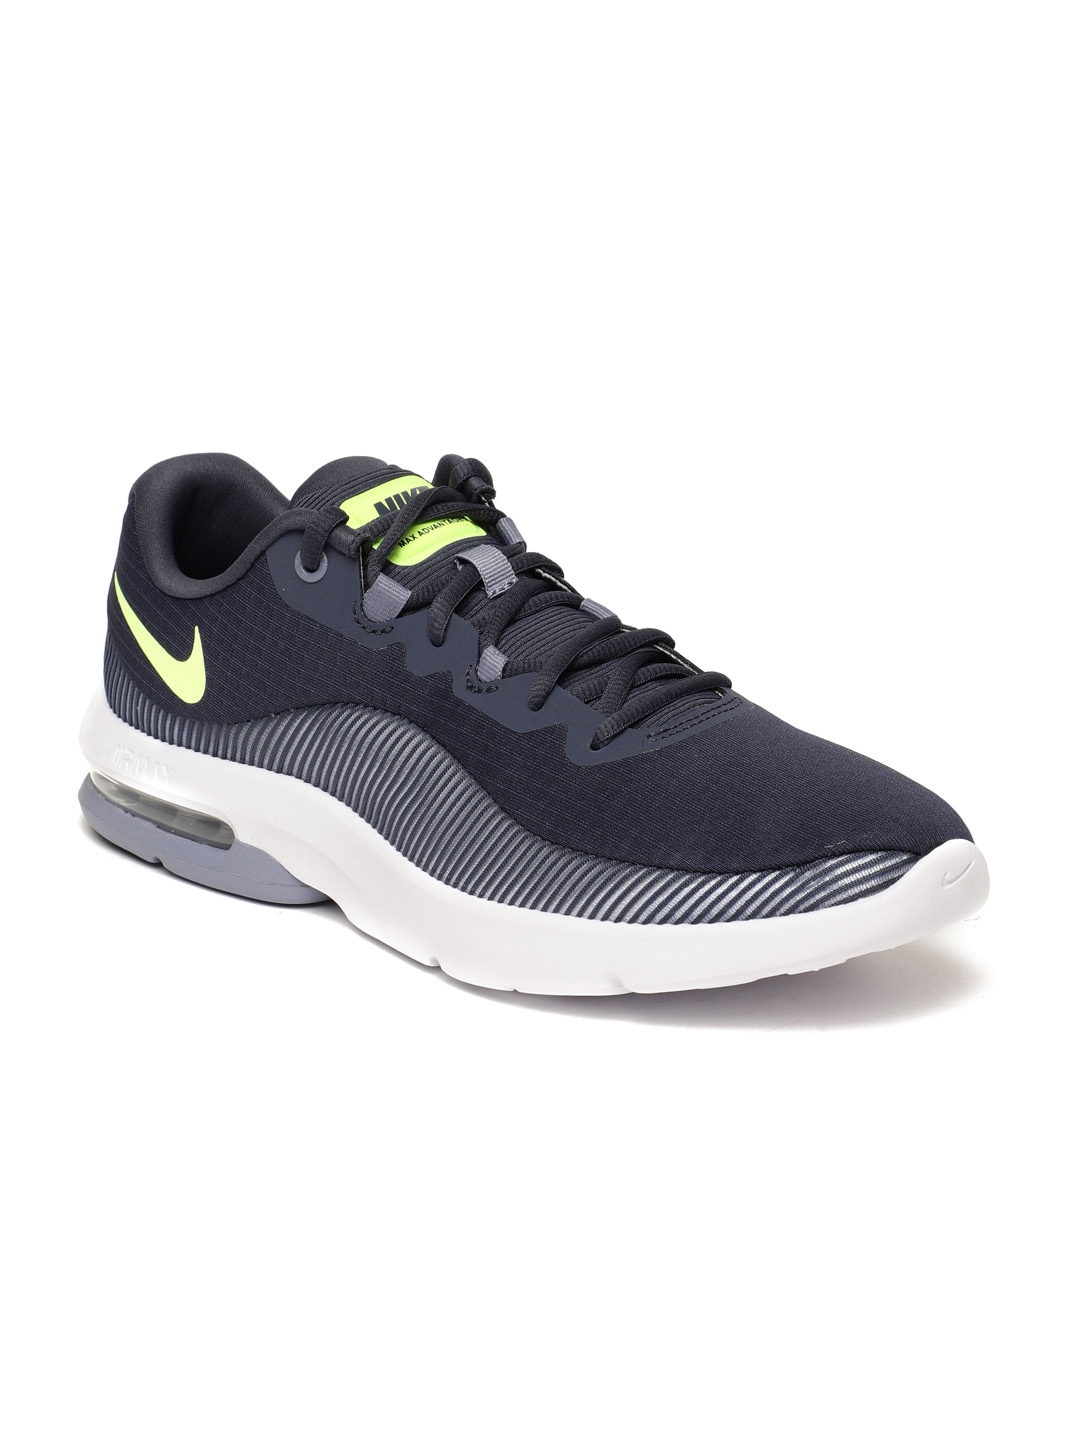 8233d2c75484b4 Buy Nike Men Blue Air Max Advantage 2 Running Shoes - Sports Shoes ...